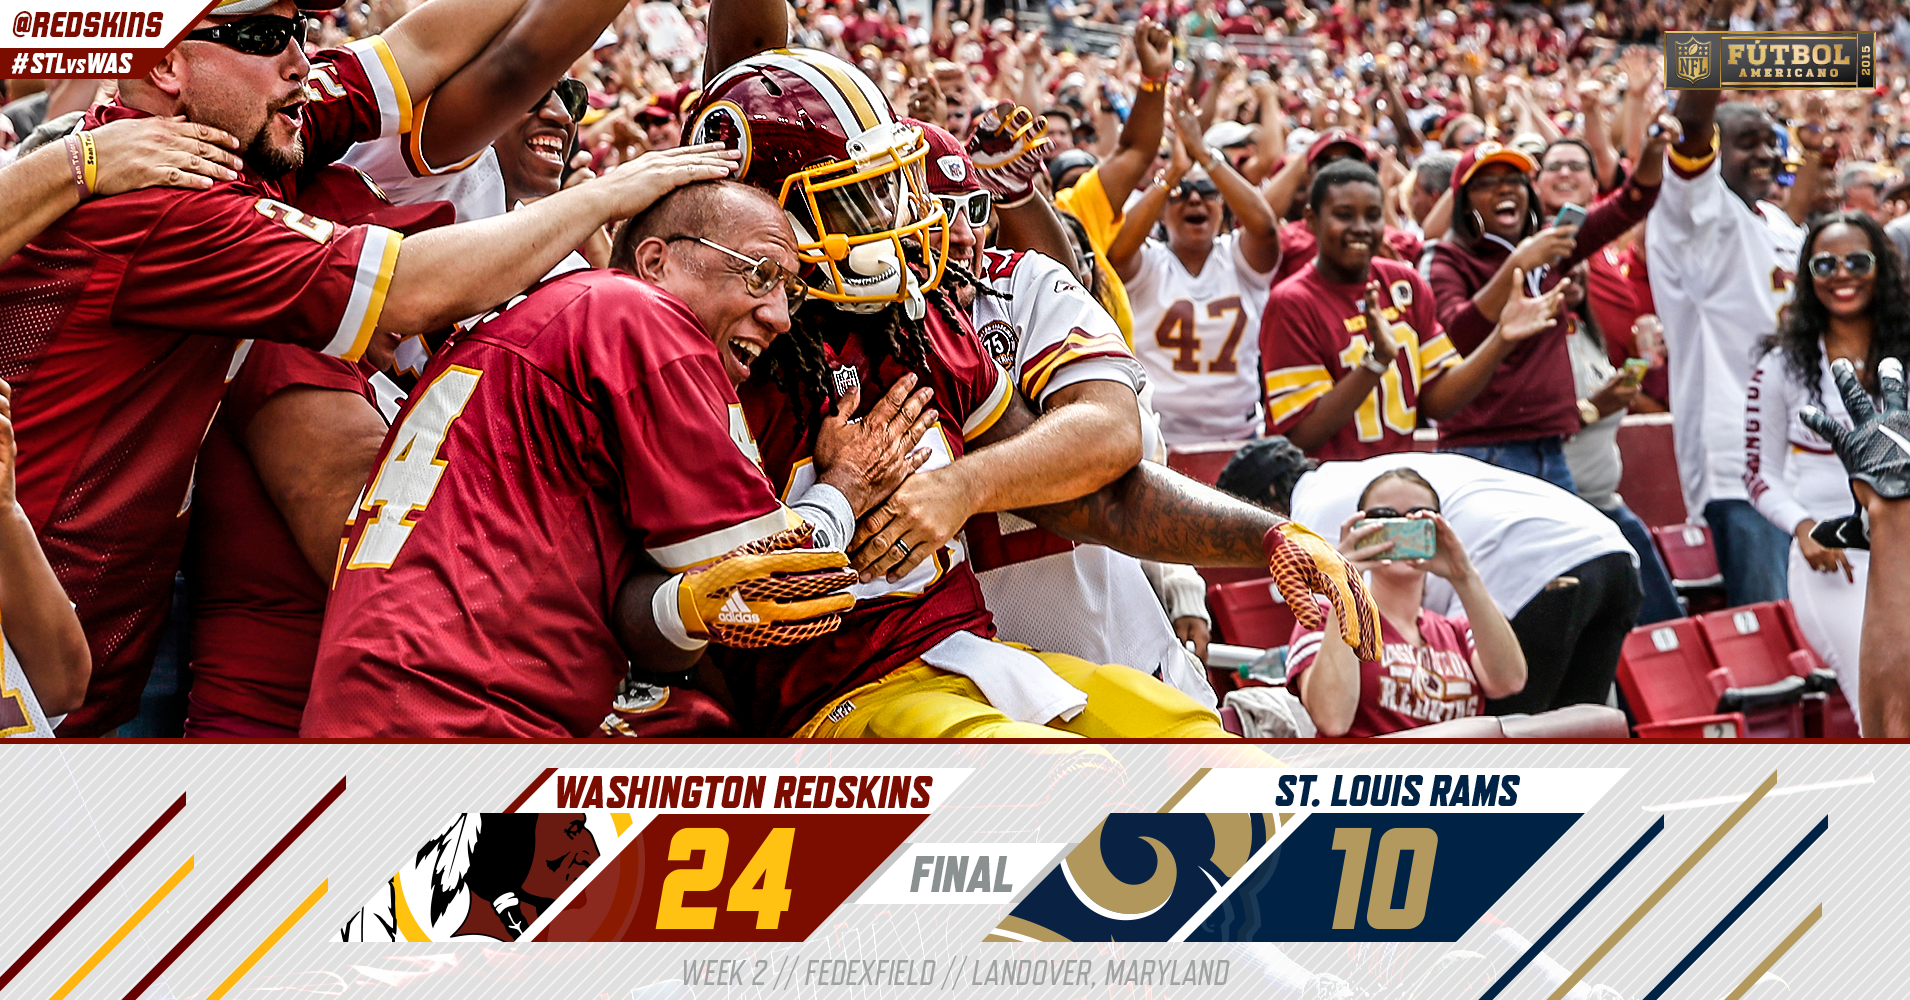 PUT IT IN THE BOOKS!  #Redskins earn victory No. 1 with a 24-10 win over the Rams!  #STLvsWAS #HTTR http://t.co/QcIt4DllUm